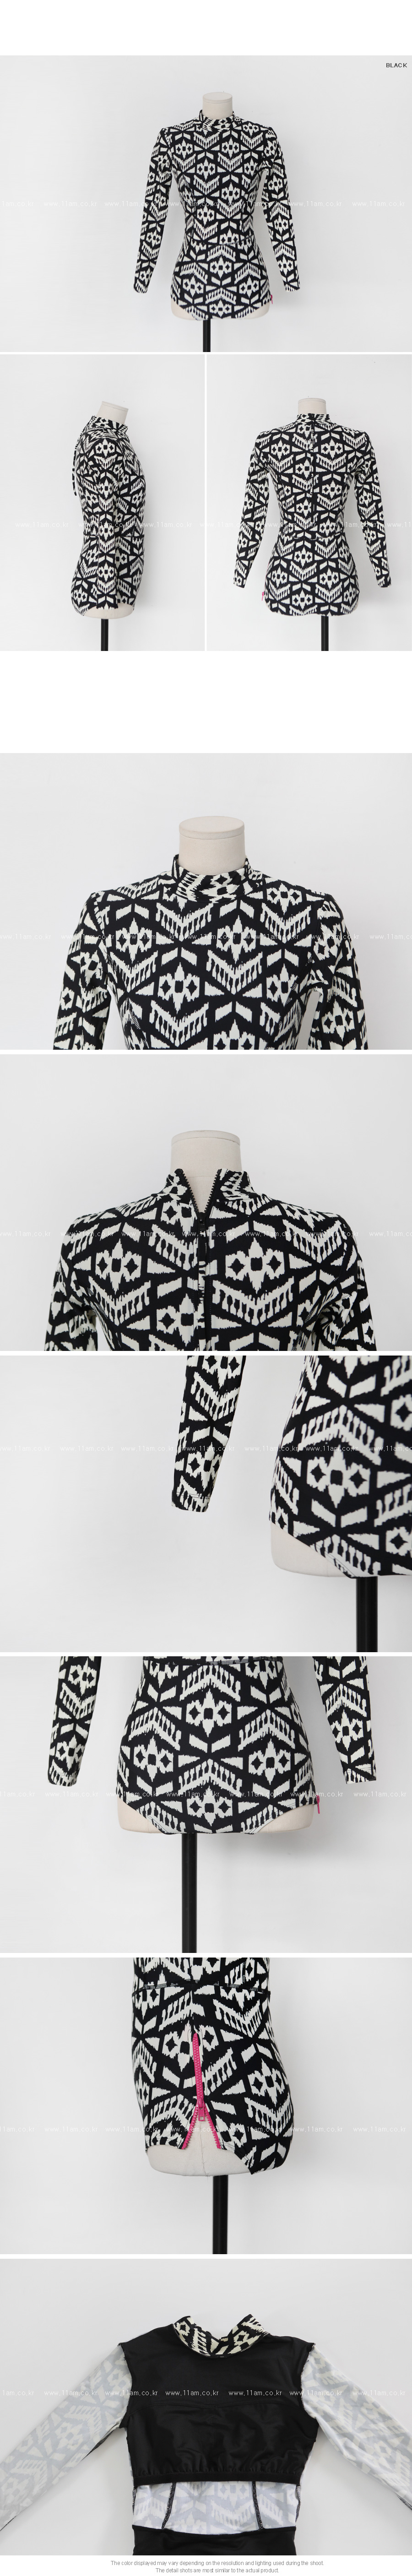 Patterned One-Piece Rash Guard|